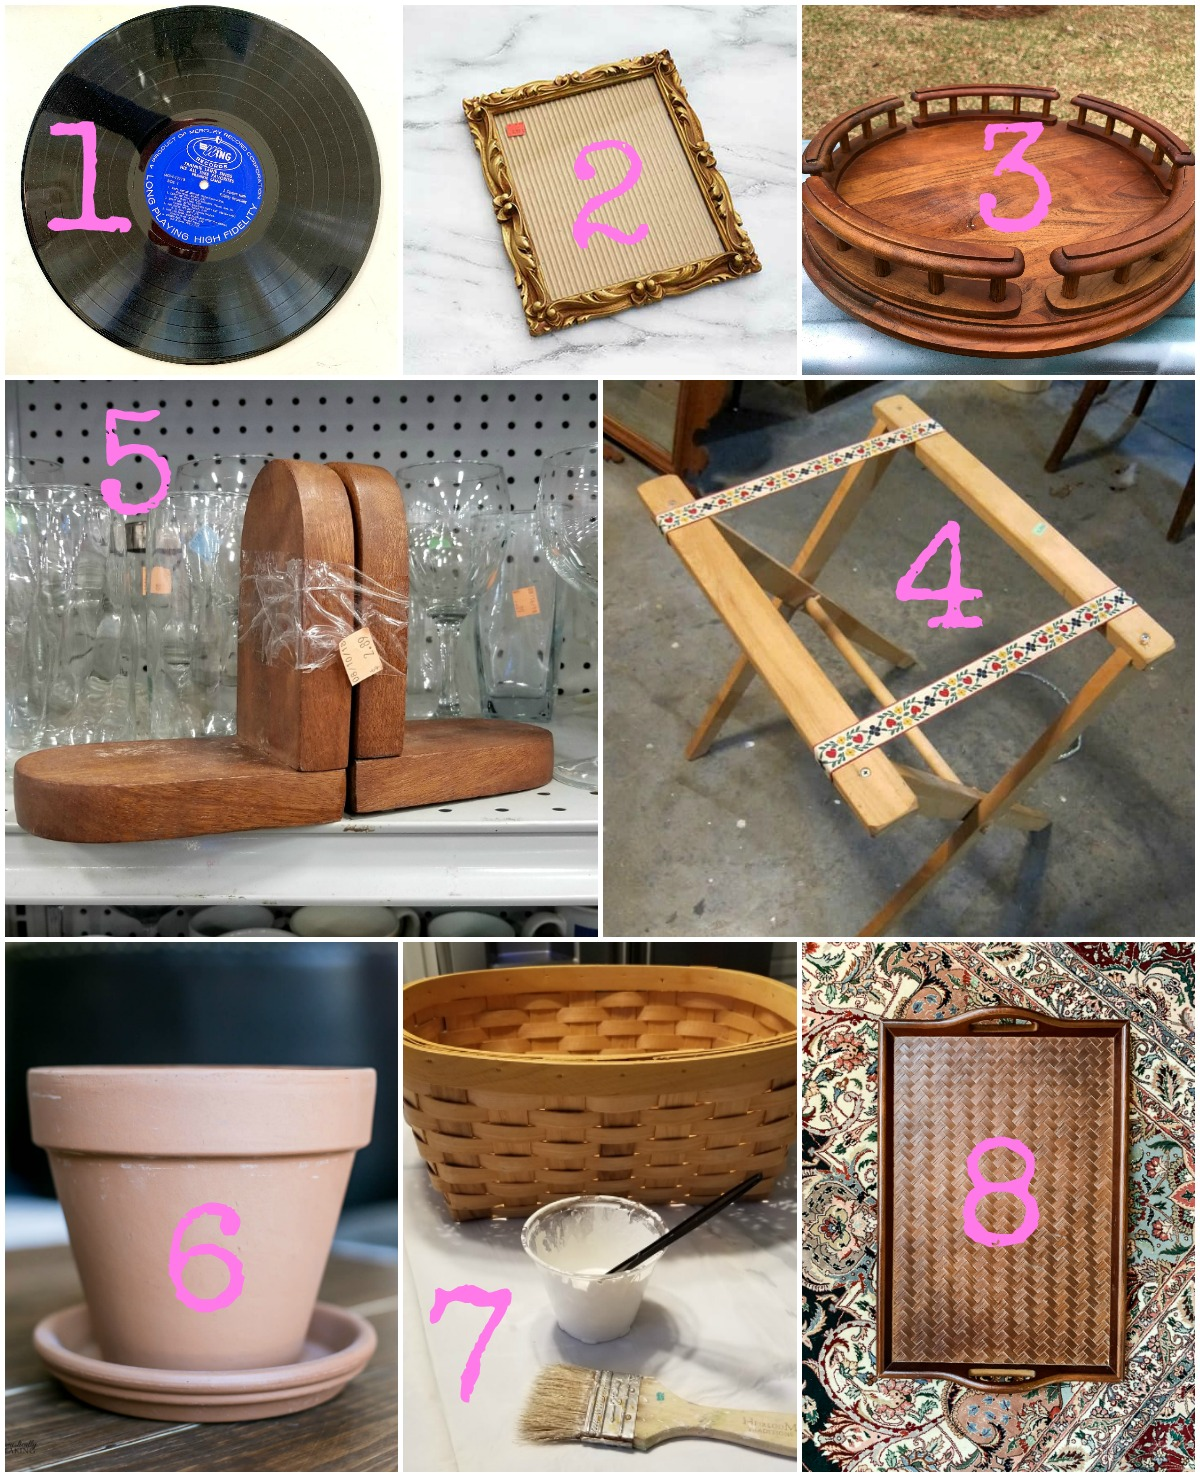 Upcycling ideas for thrifted or thrift store pieces from the best upcycling bloggers around_February 2019